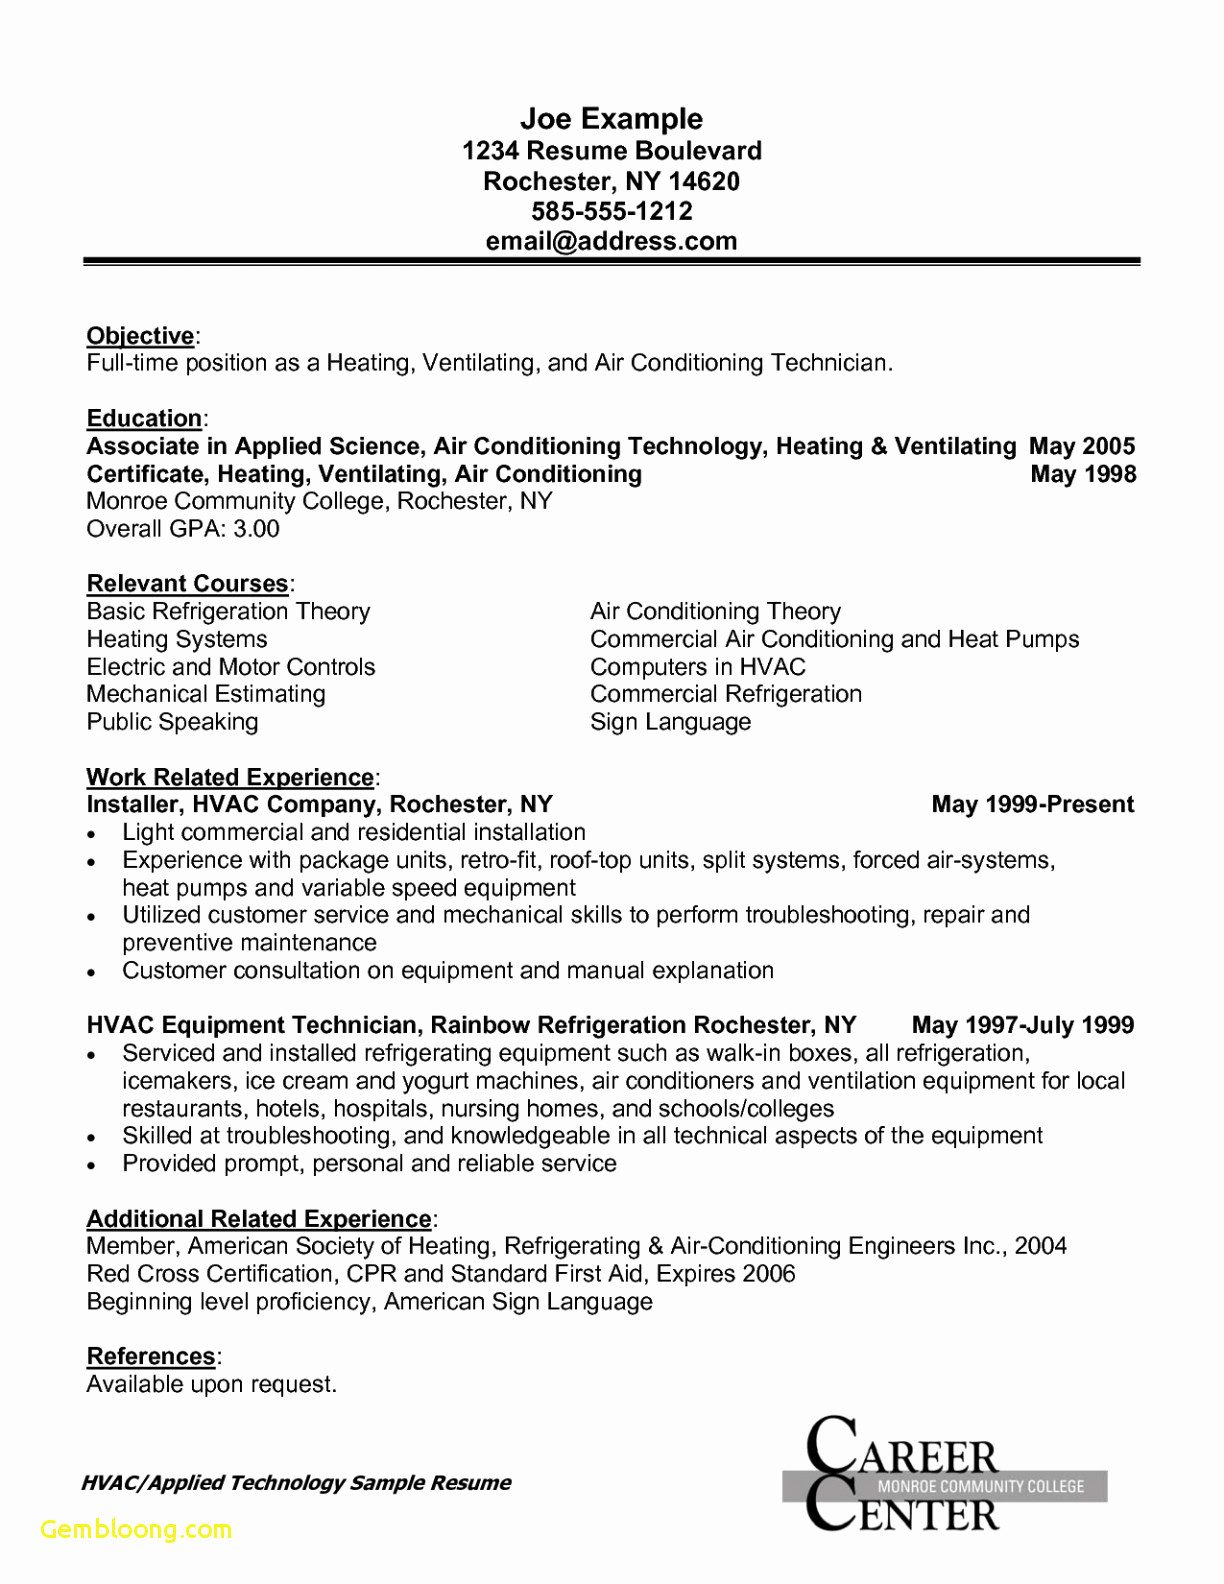 Resume Template for Hvac Technician - Hvac Cover Letter Template Collection